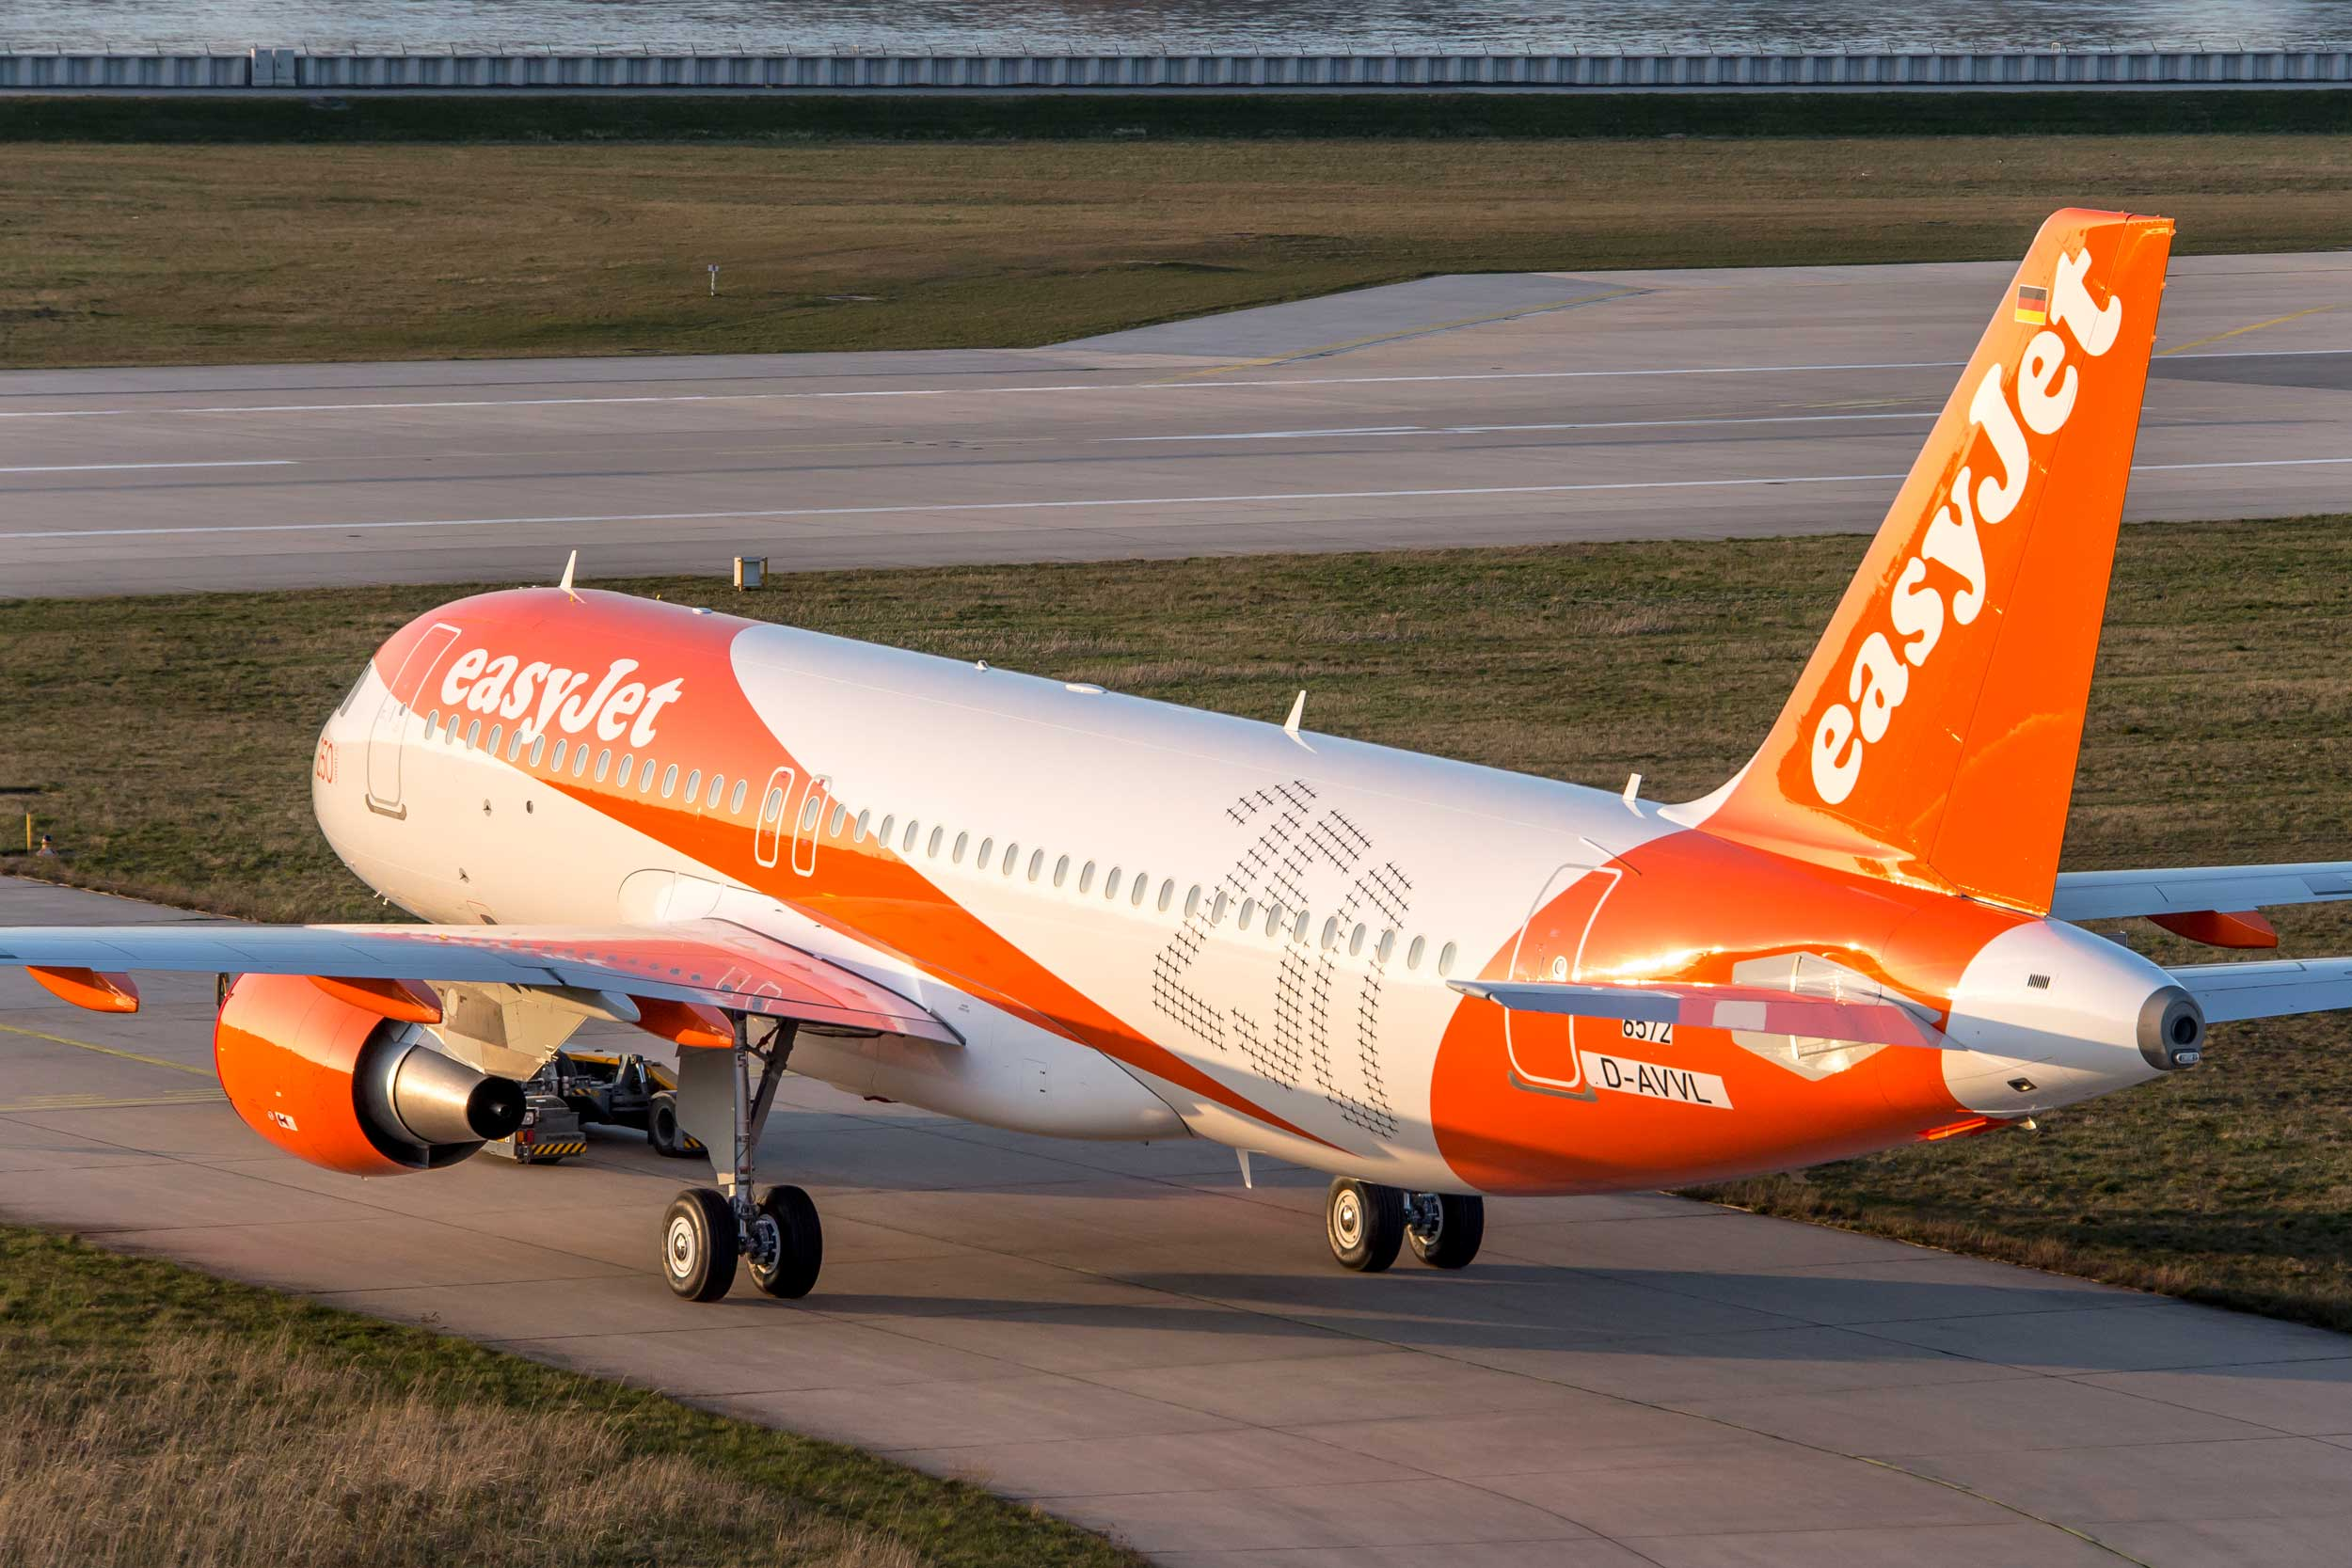 easyjet - photo #24